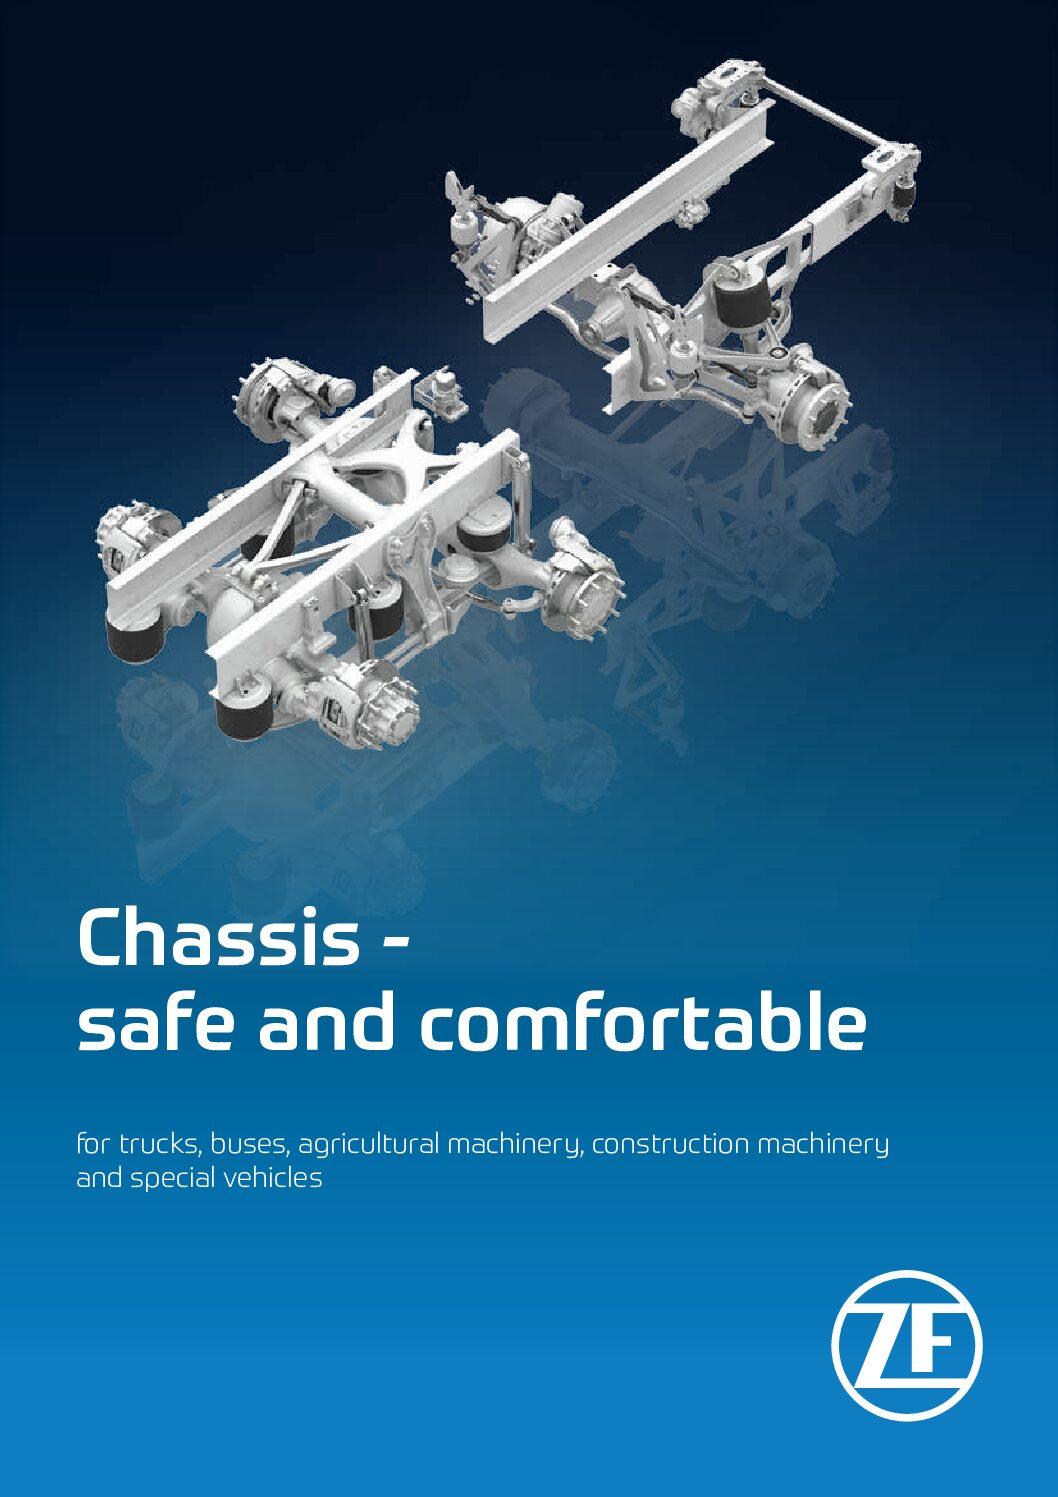 ZF Chassis Technology